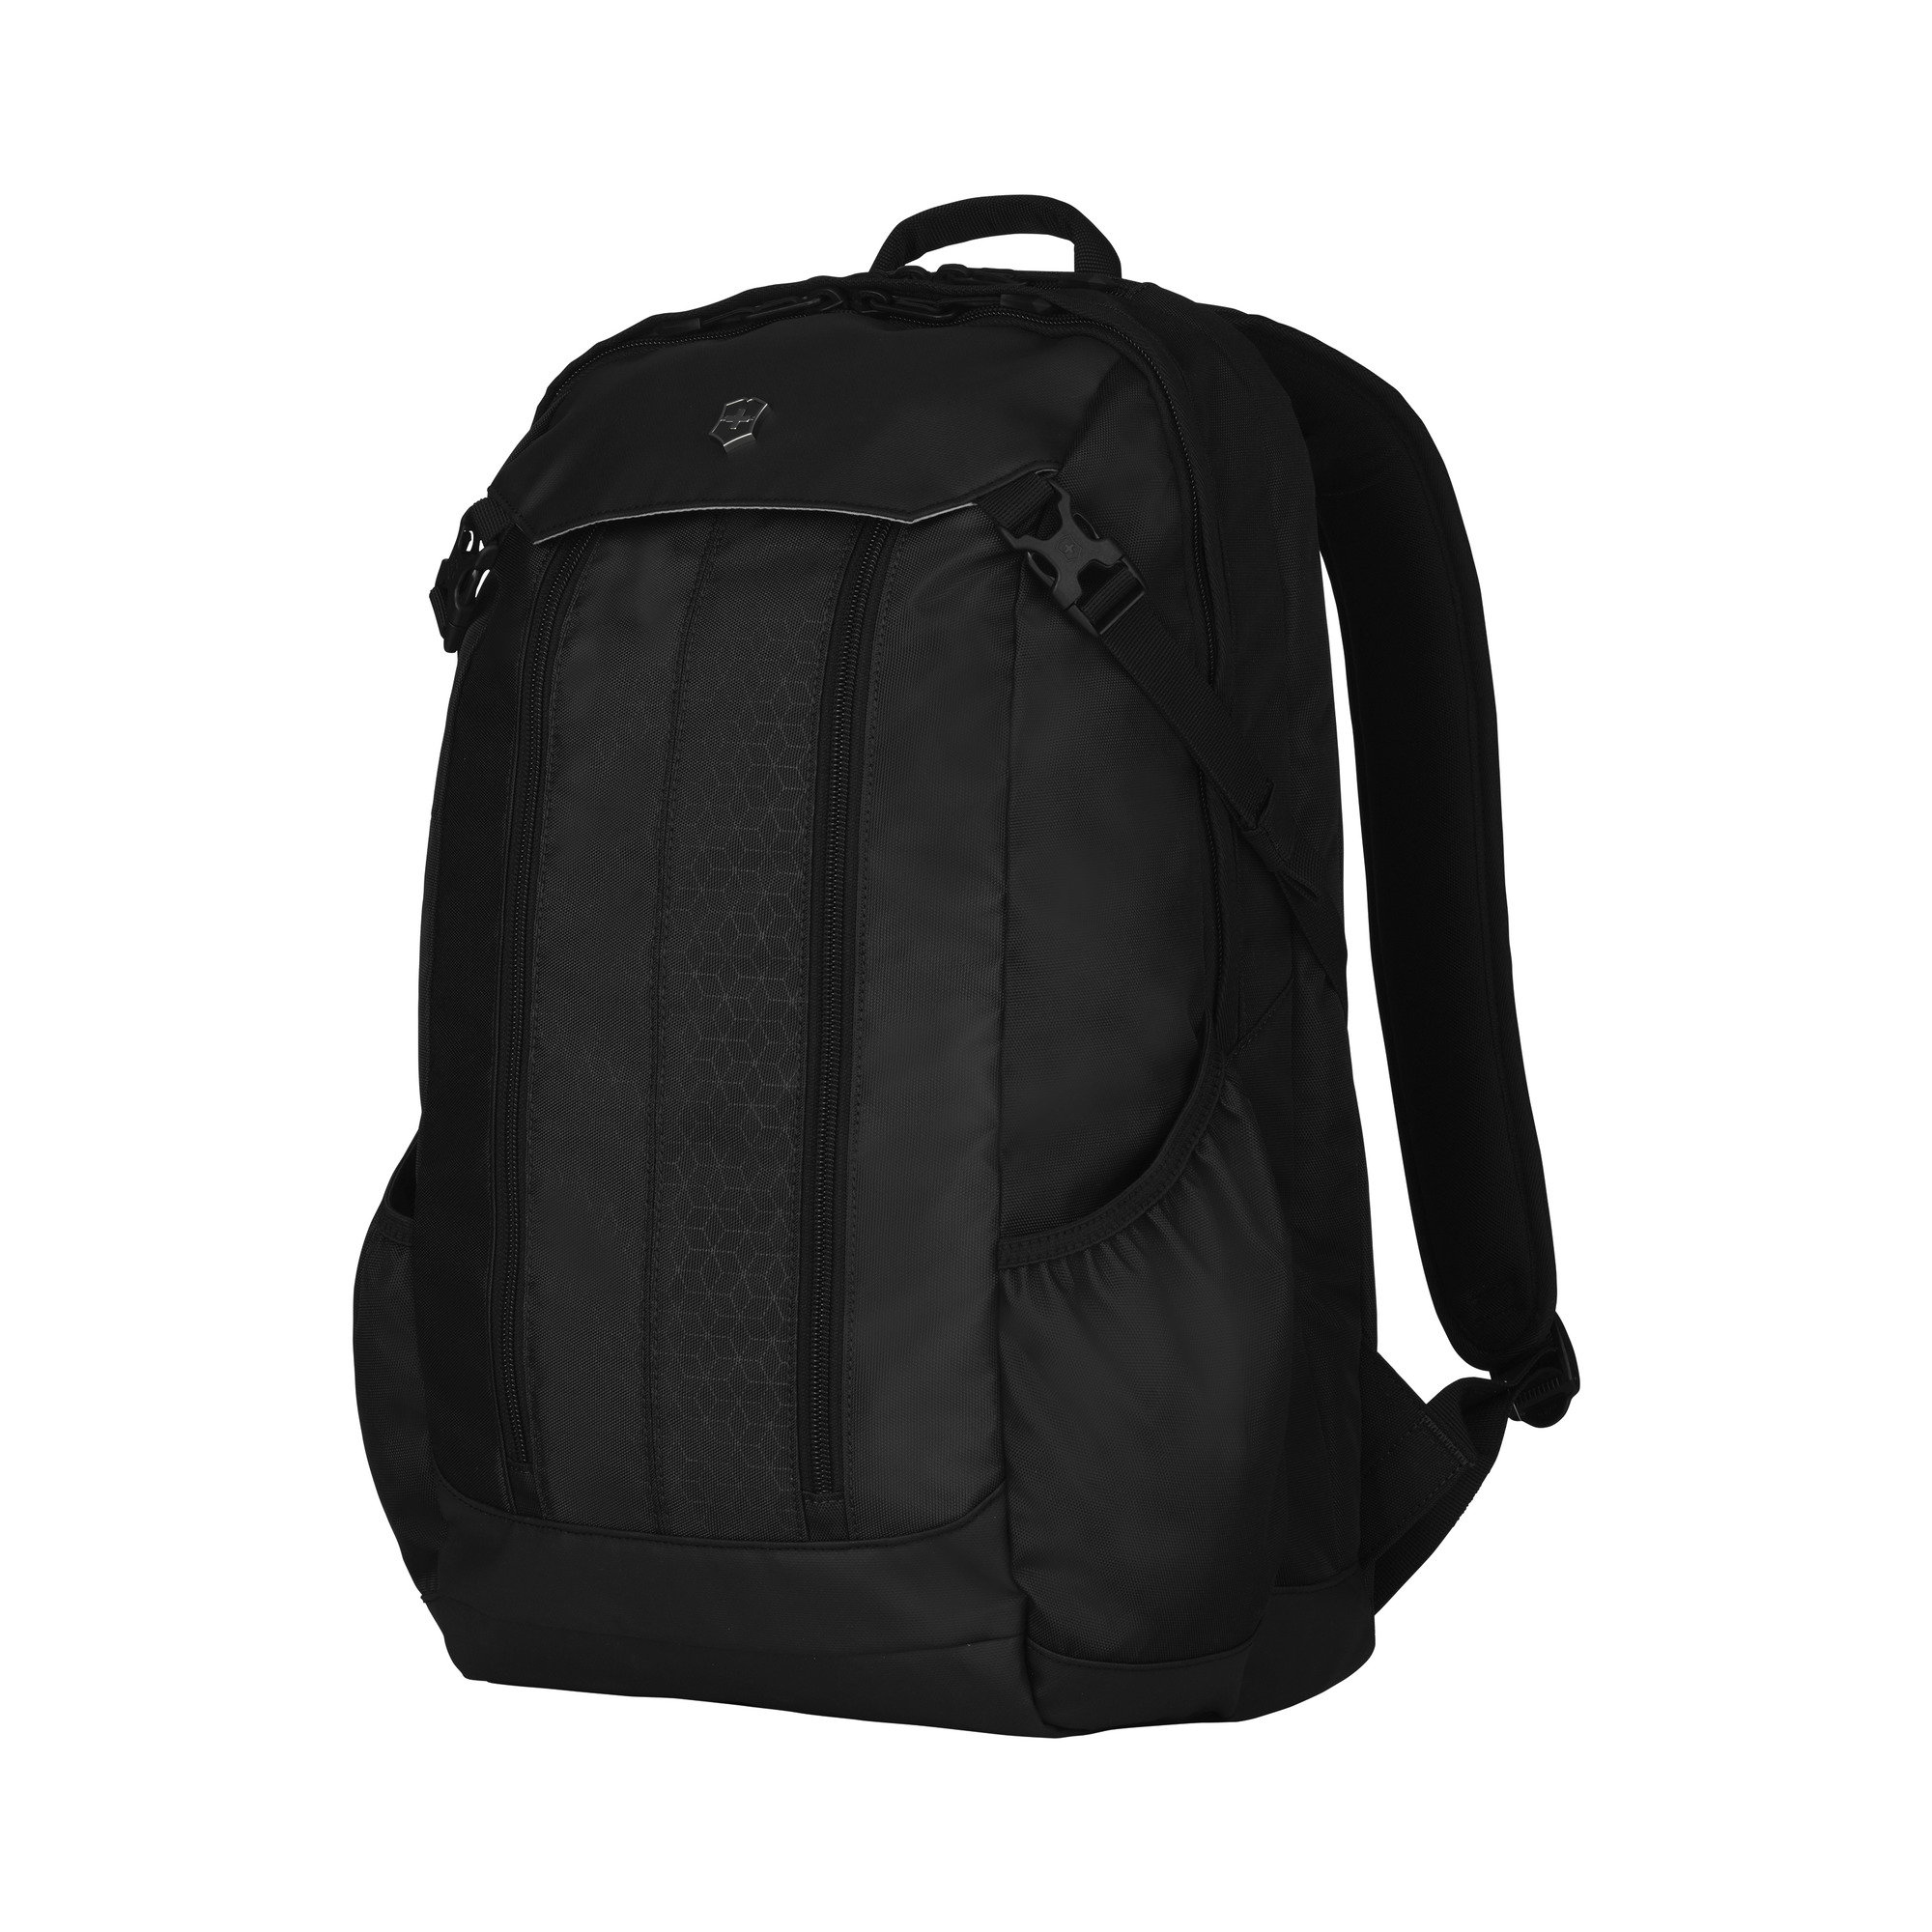 Altmont Original Slimline Laptop Backpack